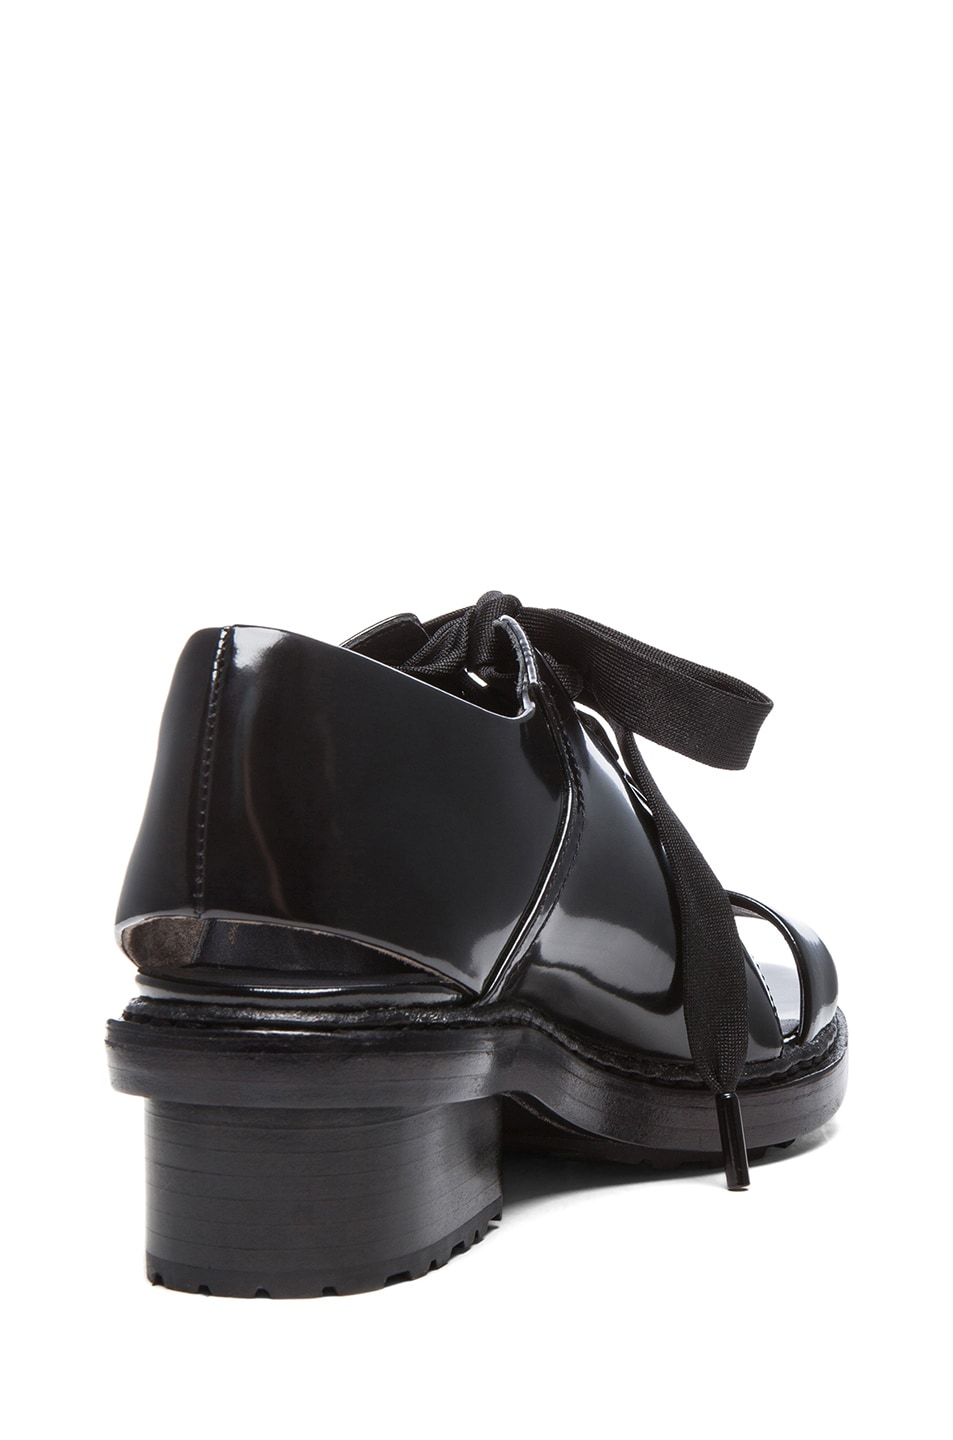 Image 3 of 3.1 phillip lim Floreana Open Toe Lace up Leather Booties in Black